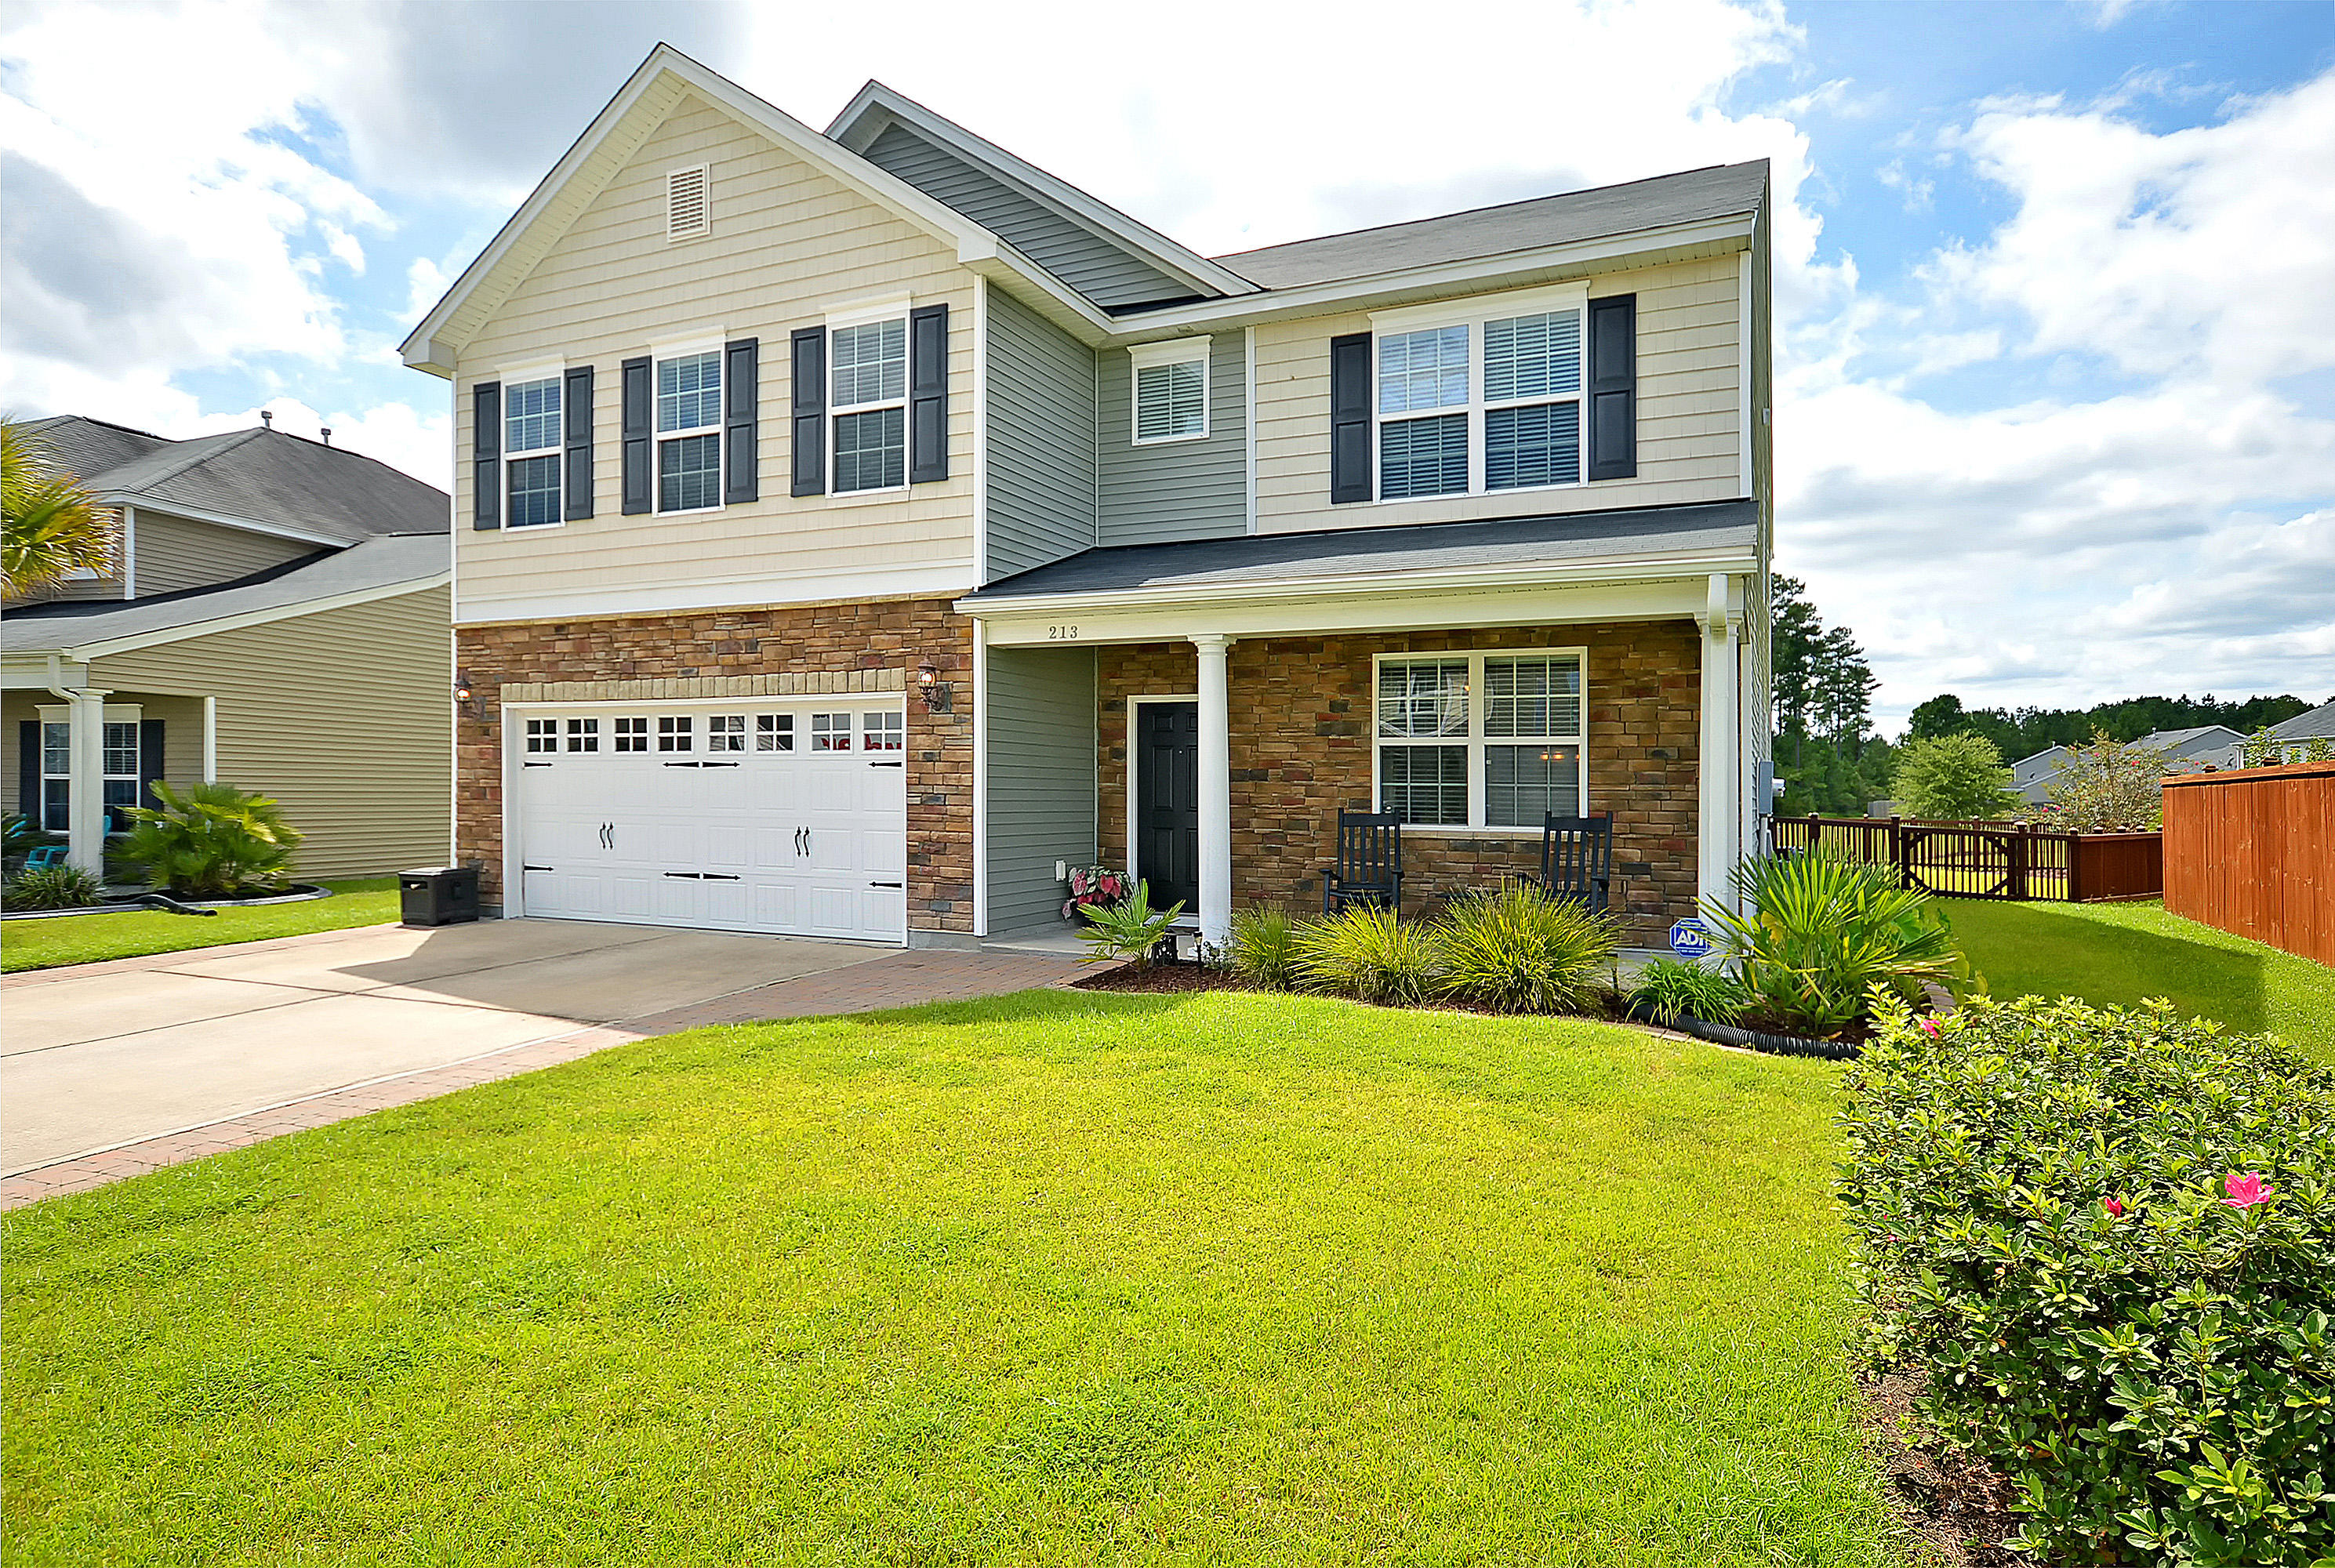 213 Decatur Drive Summerville, Sc 29486